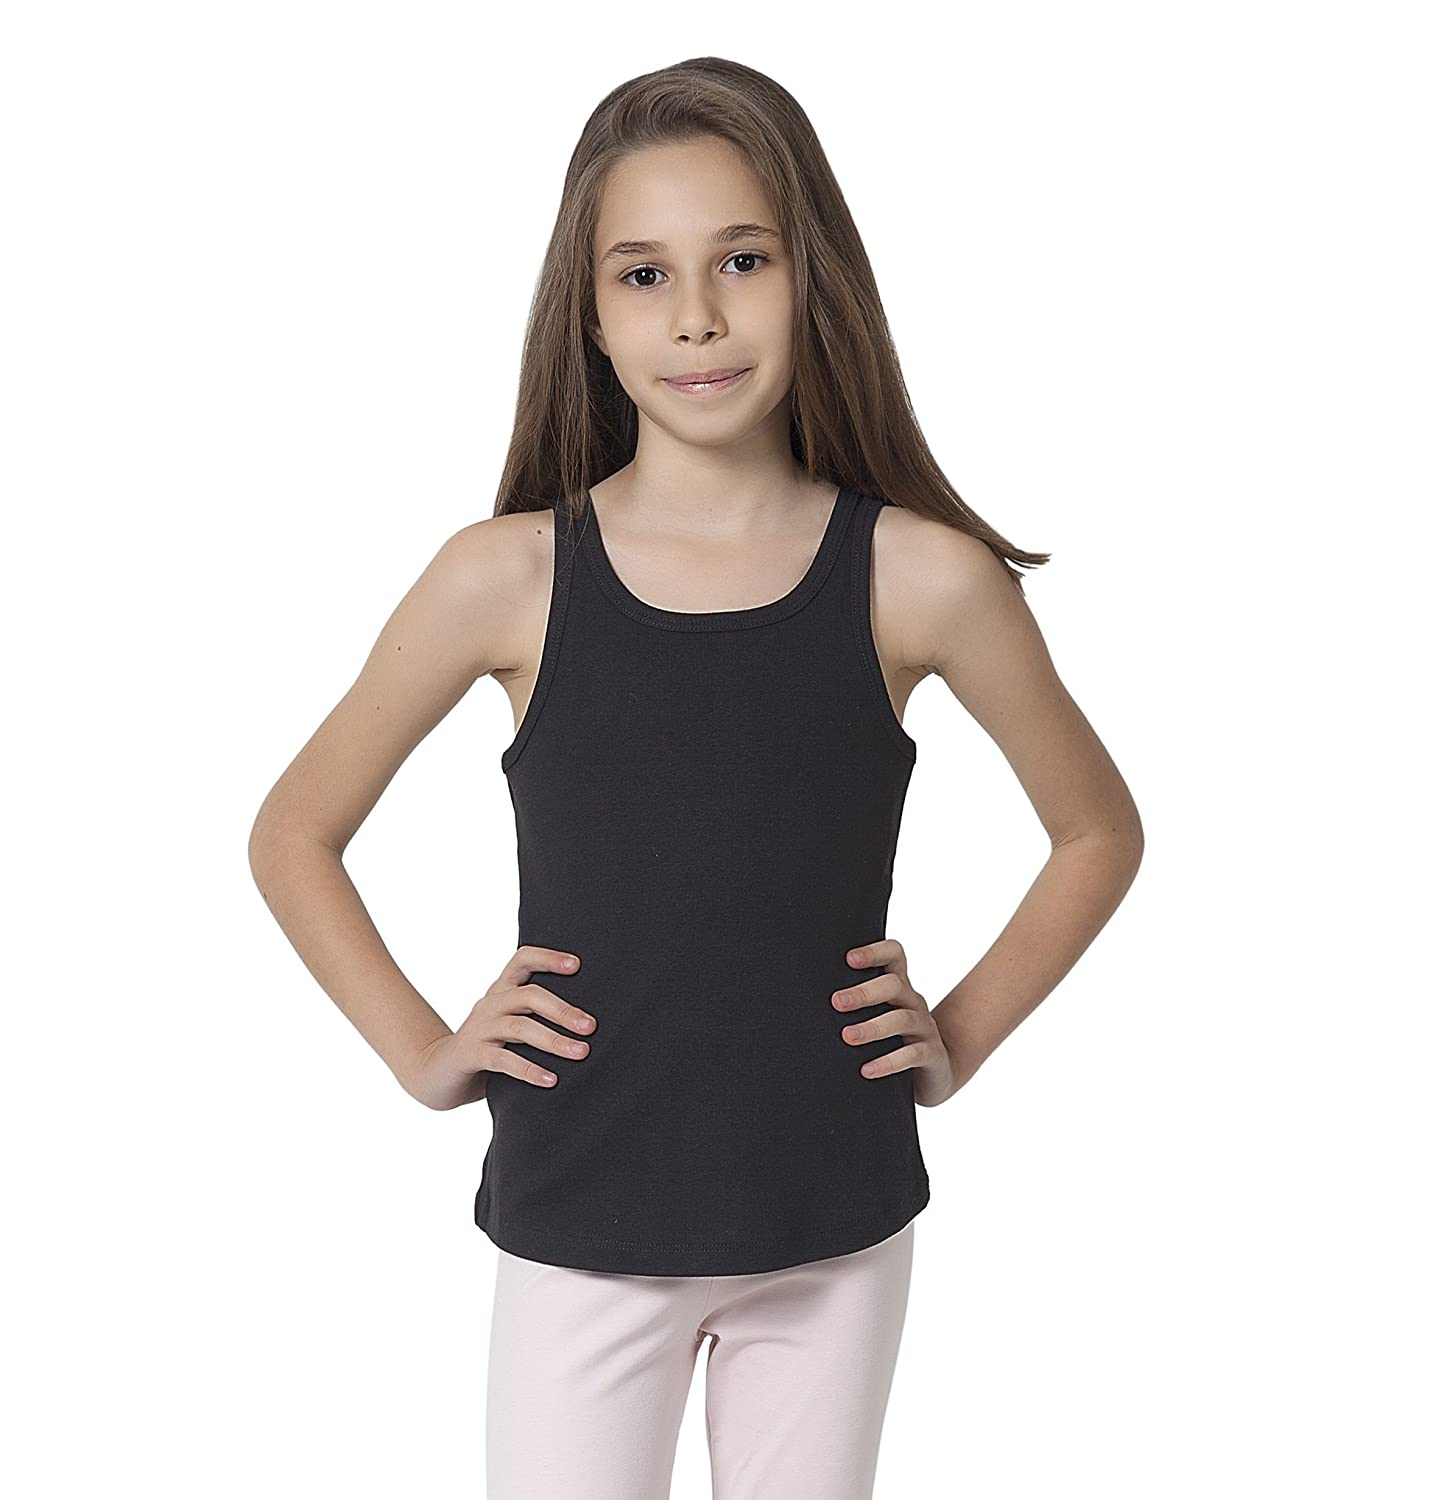 b7d504bd912624 100% Cotton Classic Undershirt Style – These unique tee tank tops for youth  and teen girls offer fashionable